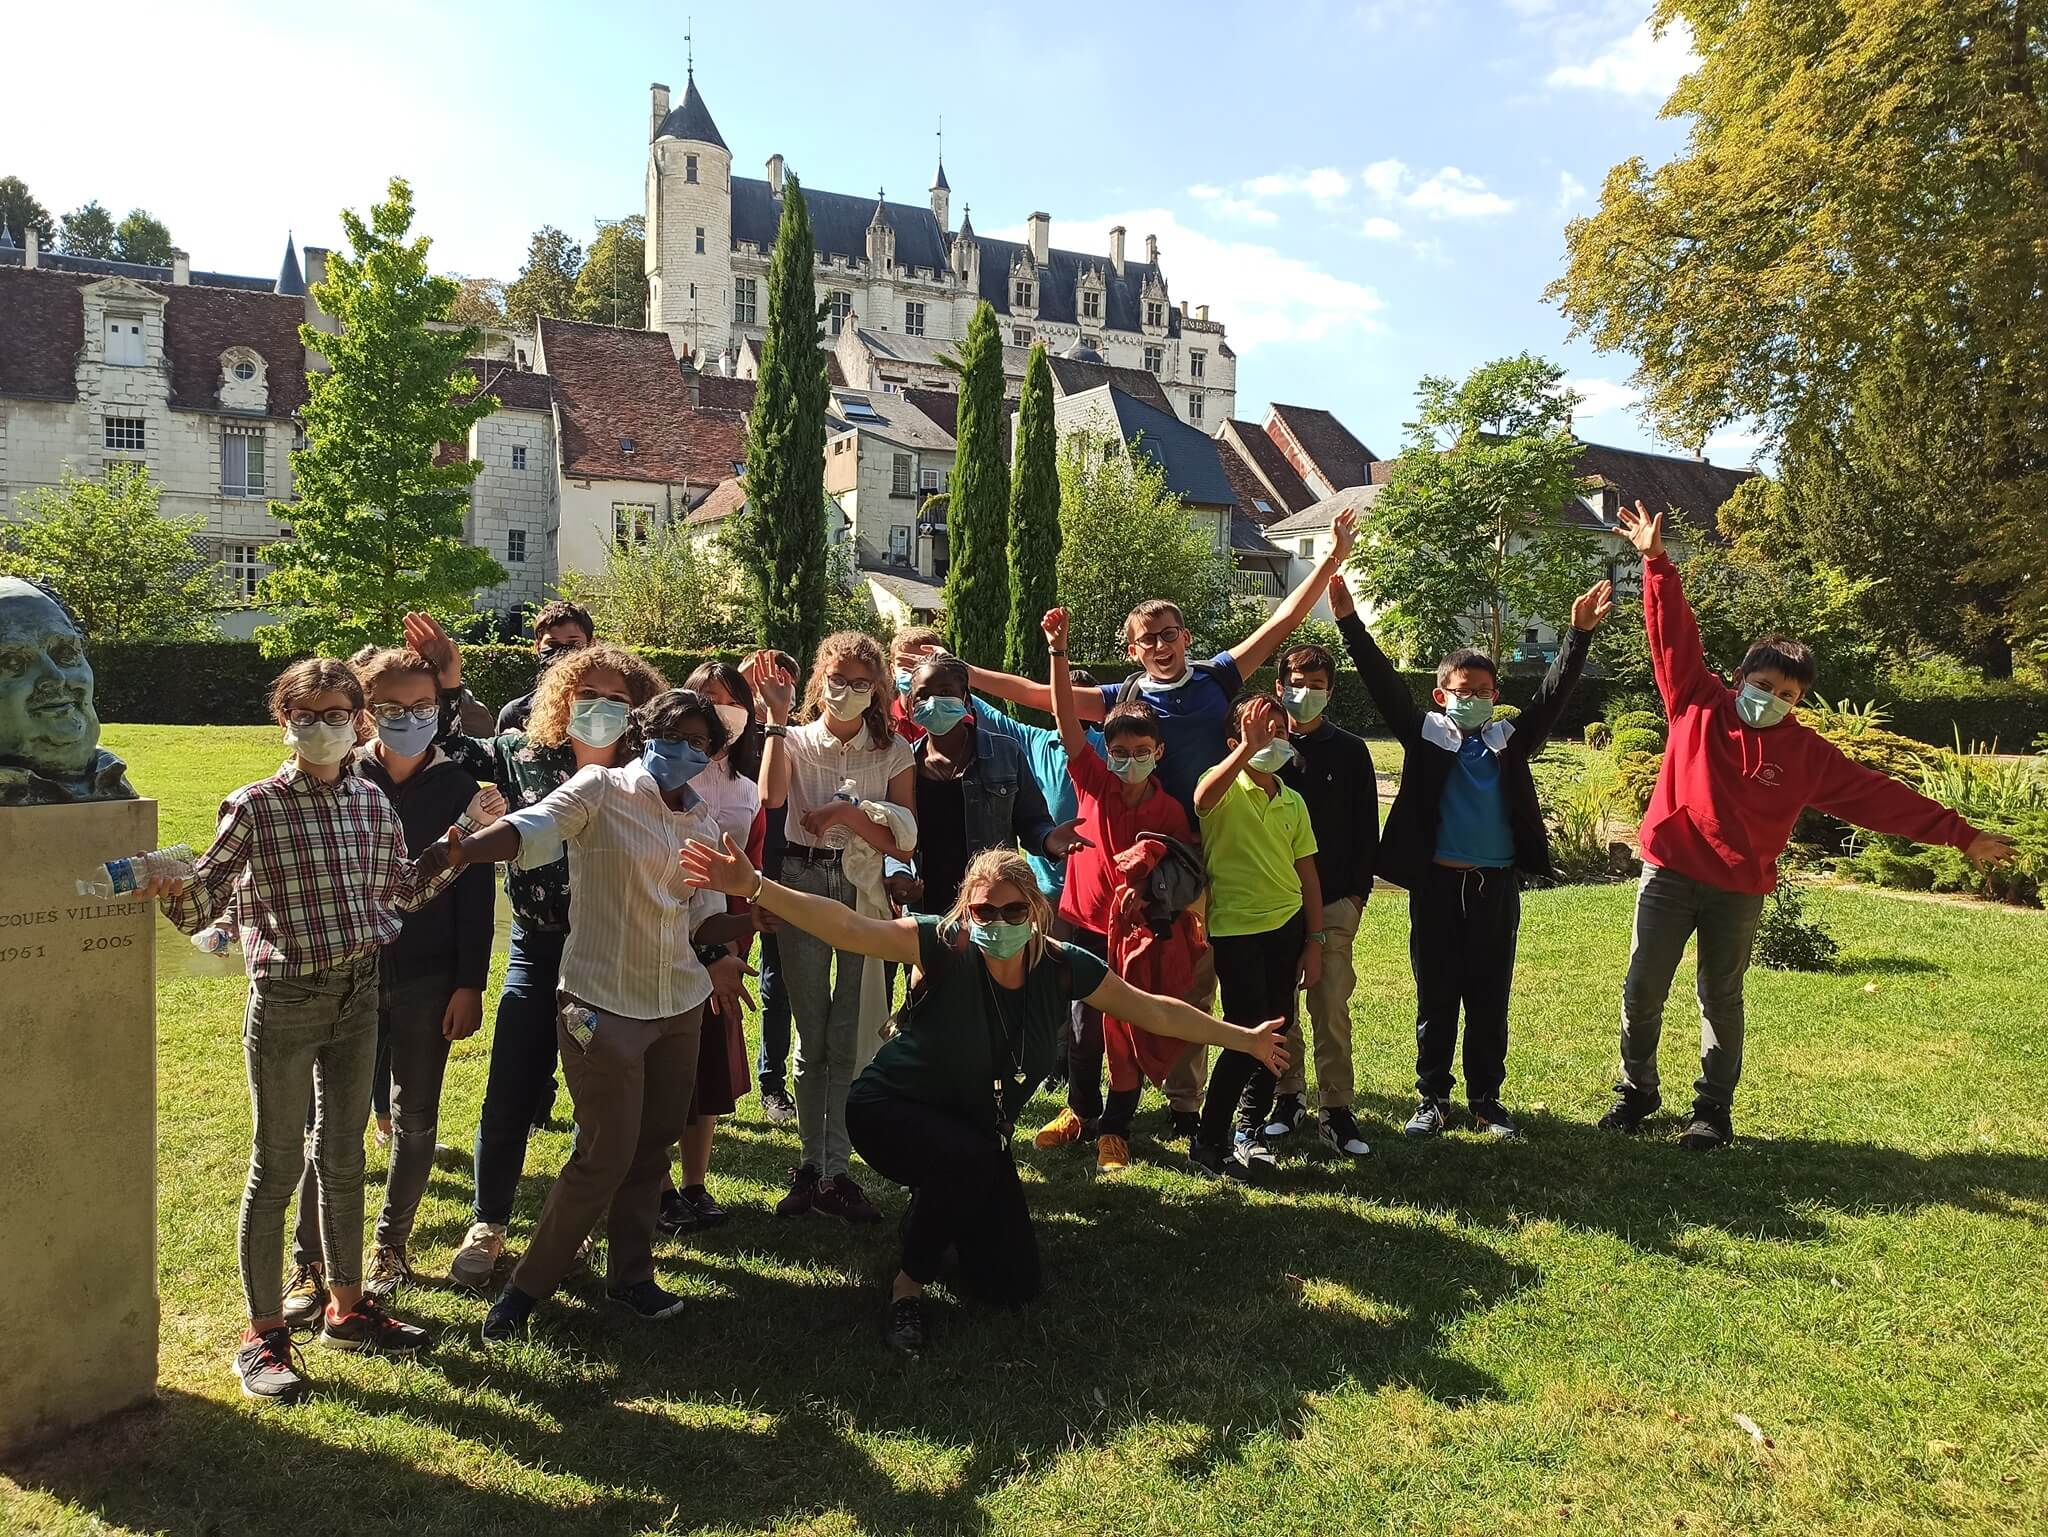 An immersive, authentic French experience awaits at Saint-Denis International School